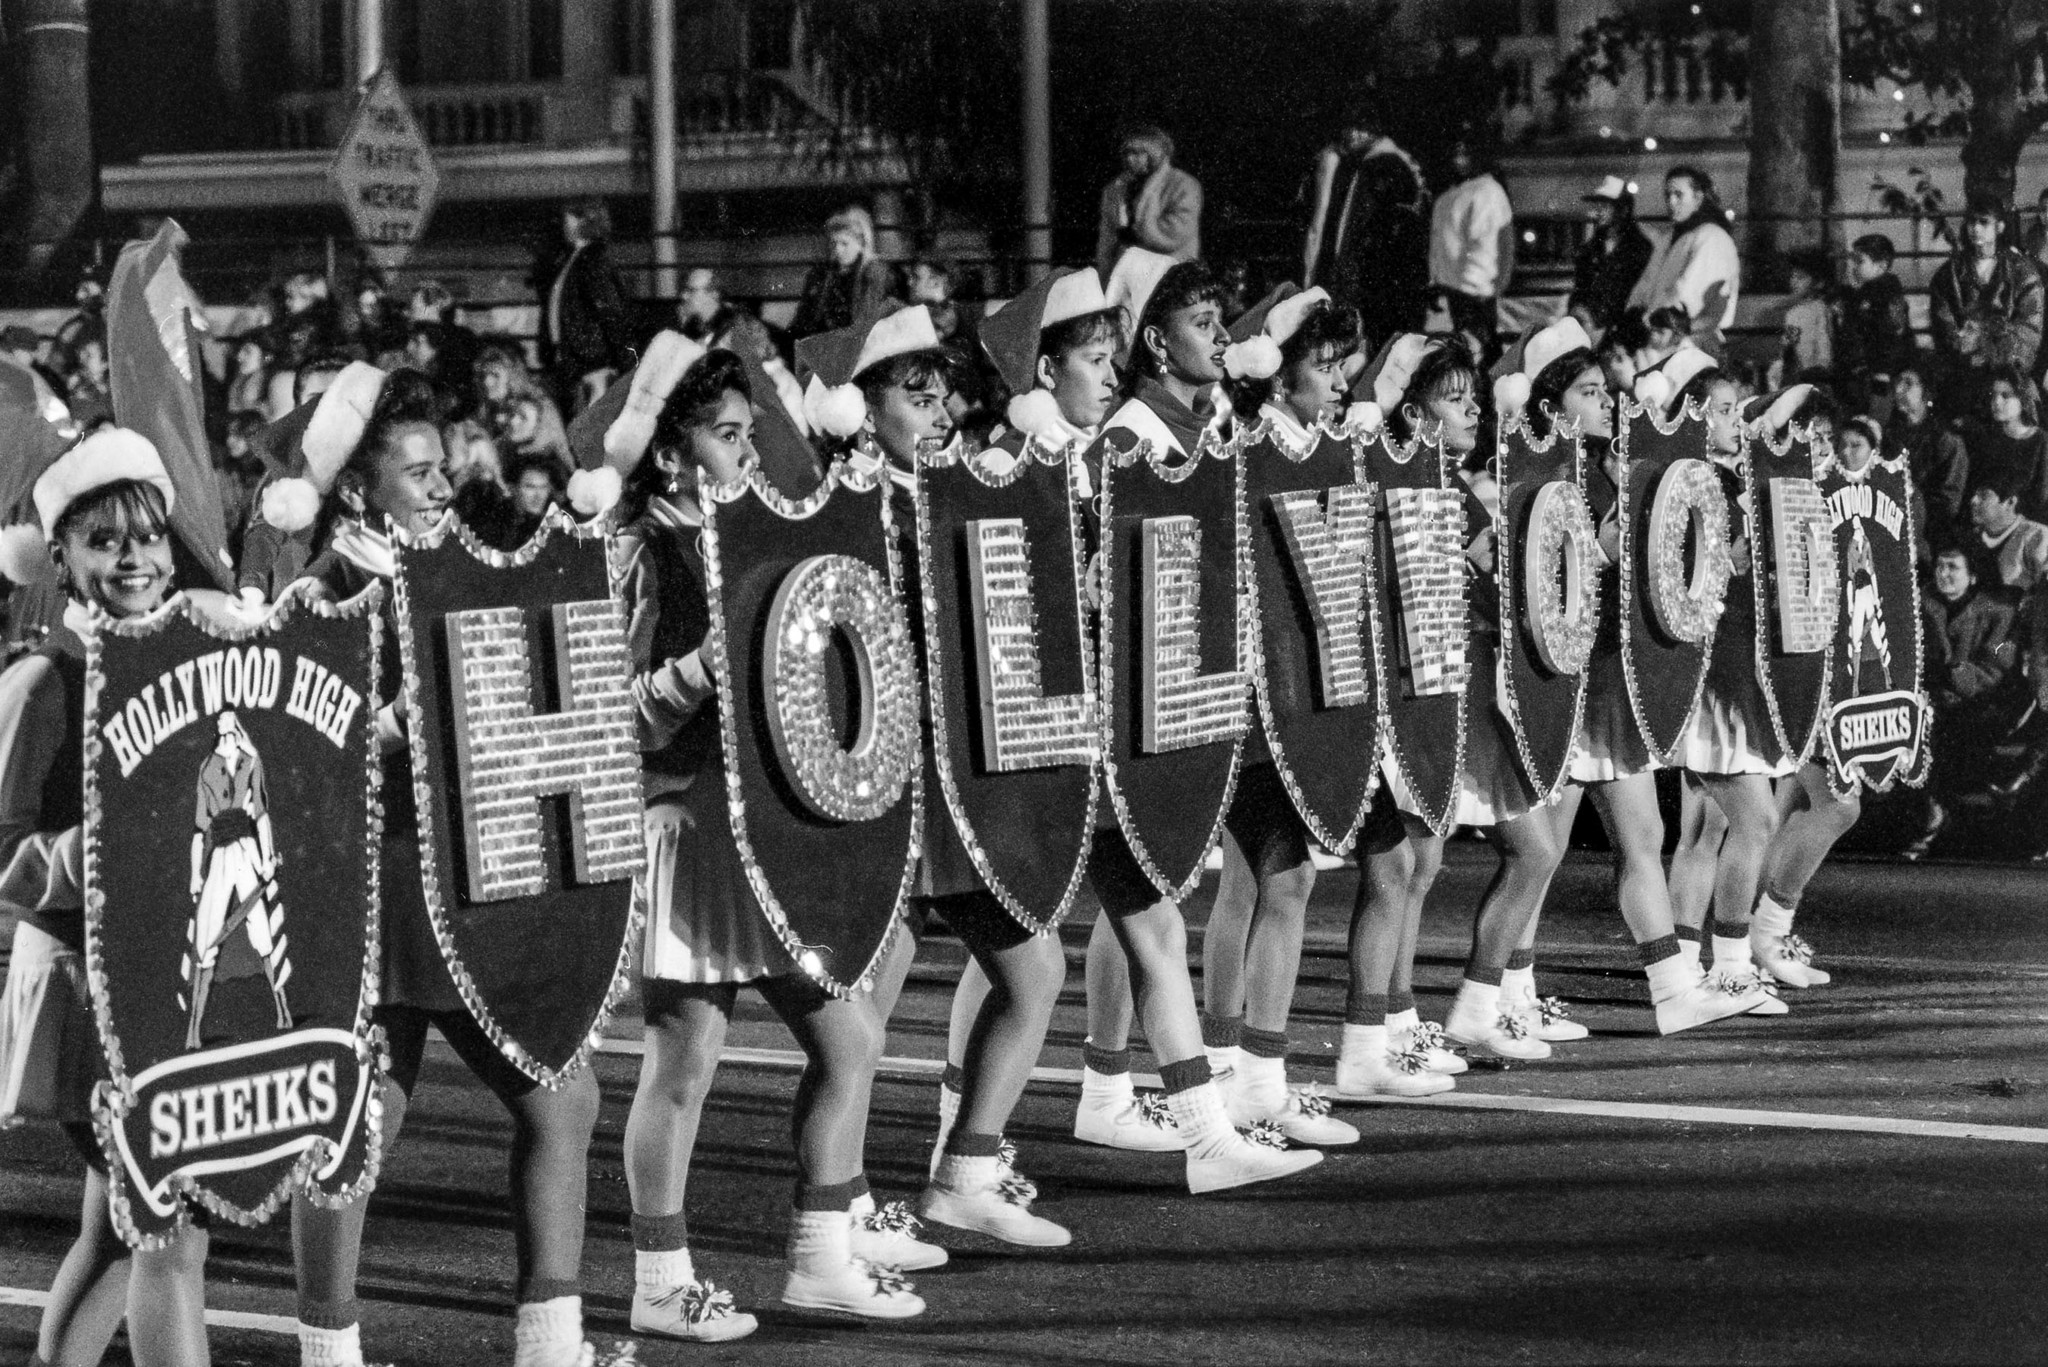 Dec. 1, 1991: Members of the Hollywood High School band march in 60th annual Hollywood Christmas Par